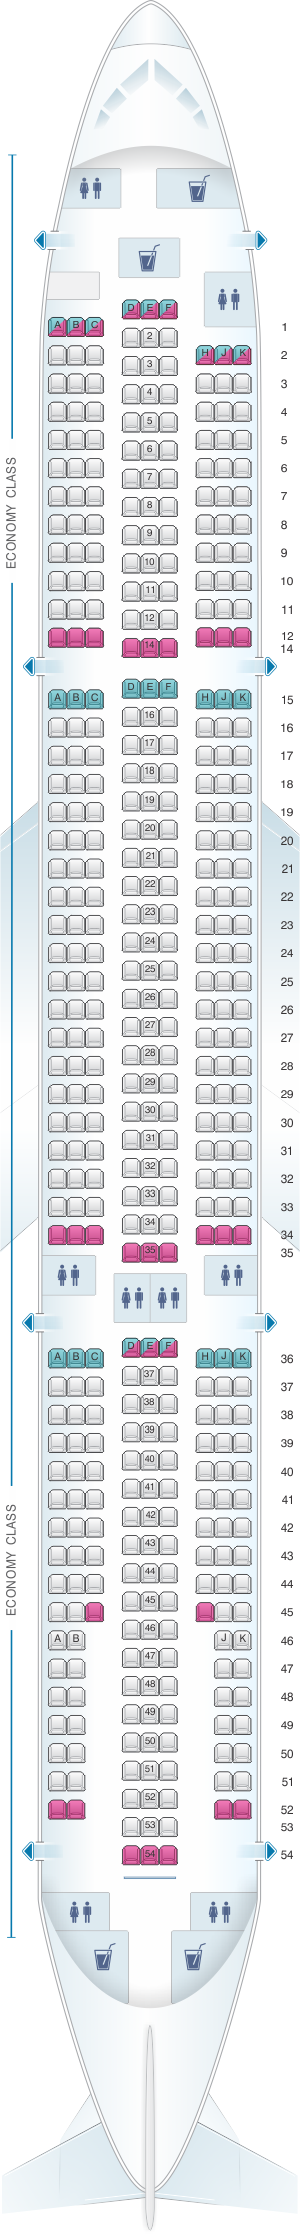 Seat map for Cebu Pacific Air Airbus A330